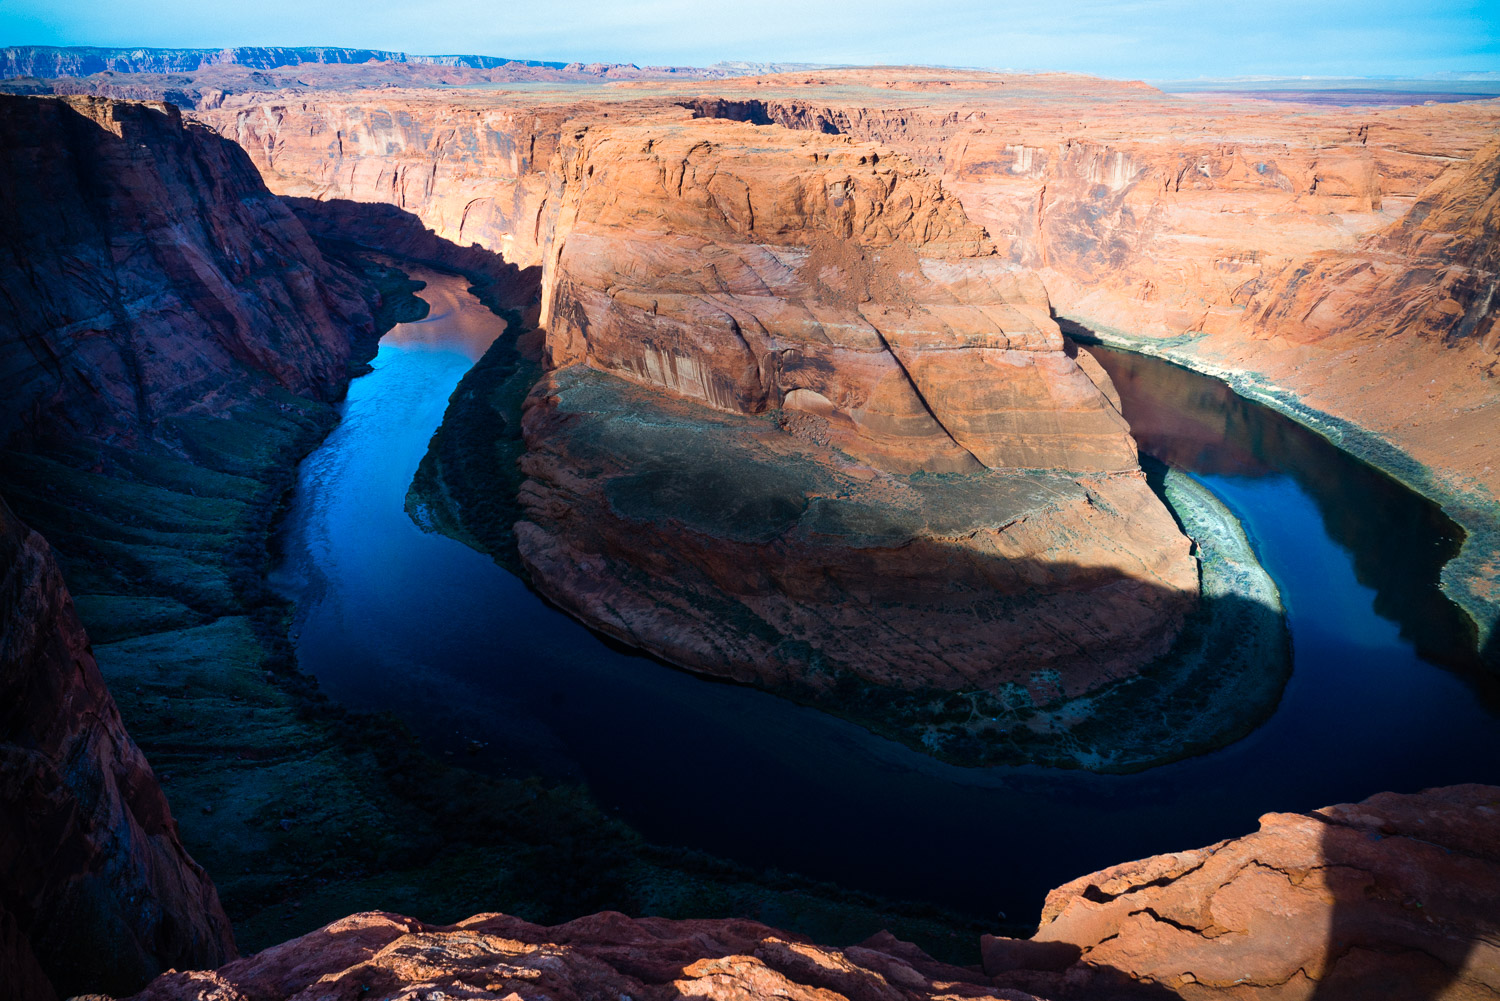 Horseshoe Bend. If you get vertigo easily, stay away from the edge because it's a long drop down and every year at least of handful of poor souls lose their footing and that's the end of them. If you want the best shots here it's actually mid day to avoid half the feature being emerged in shadow, sunset, or long exposures in the middle of the night.